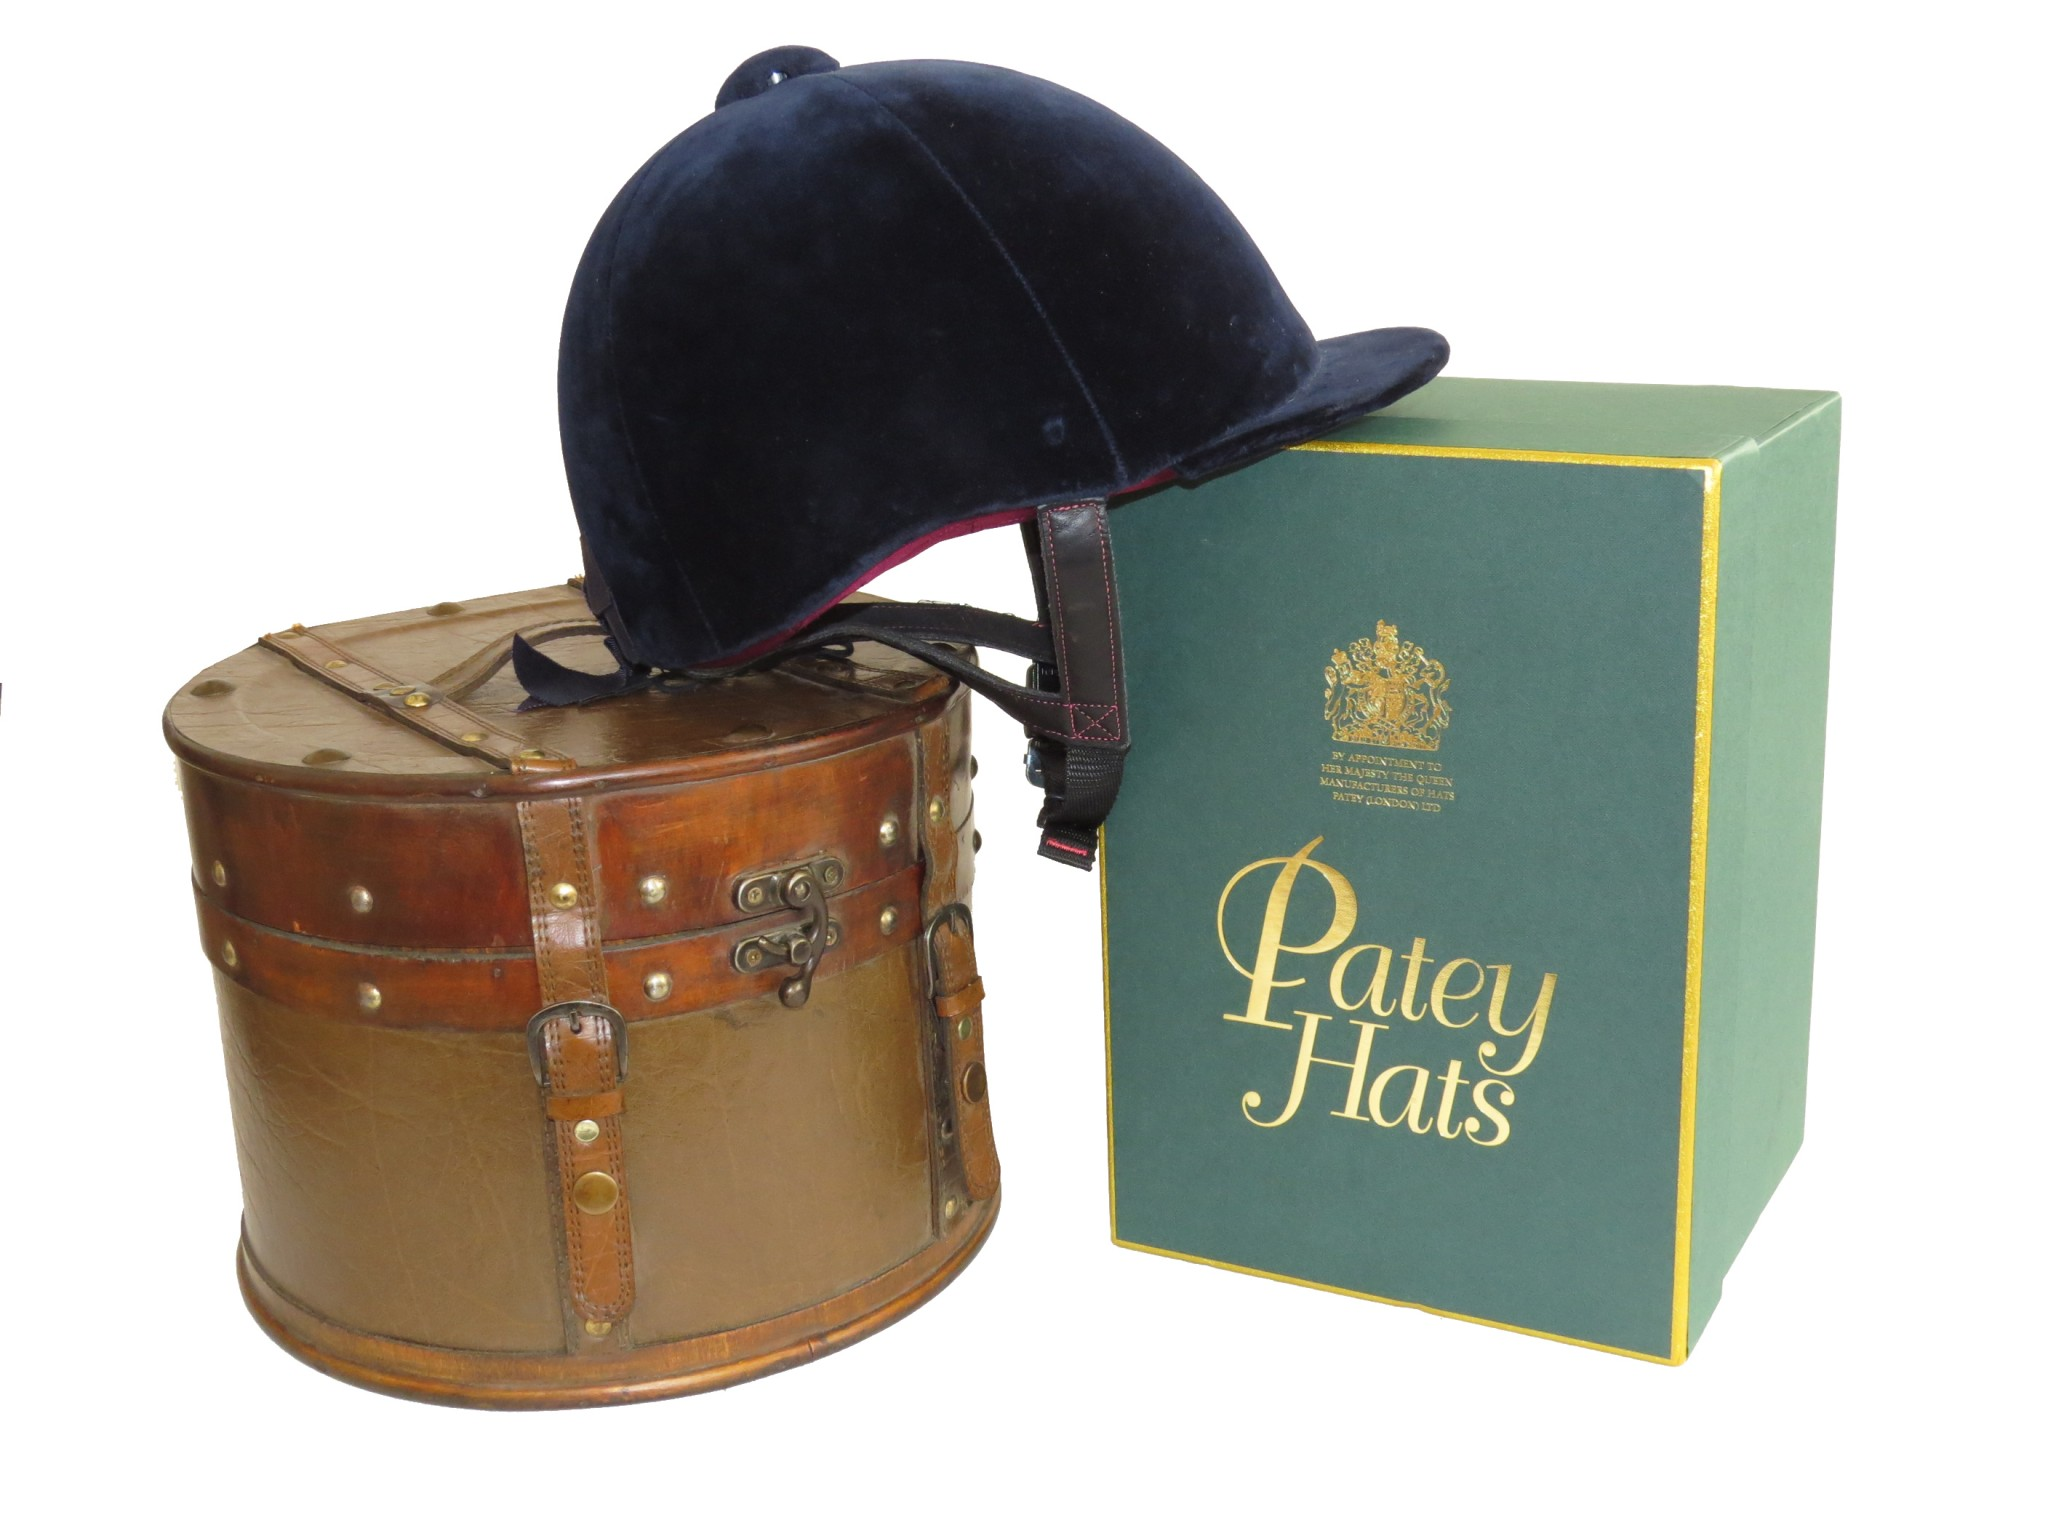 Patey Protector white BG - 'The Queen's Hatmaker' Patey Hats and PROtector Helmets Merge